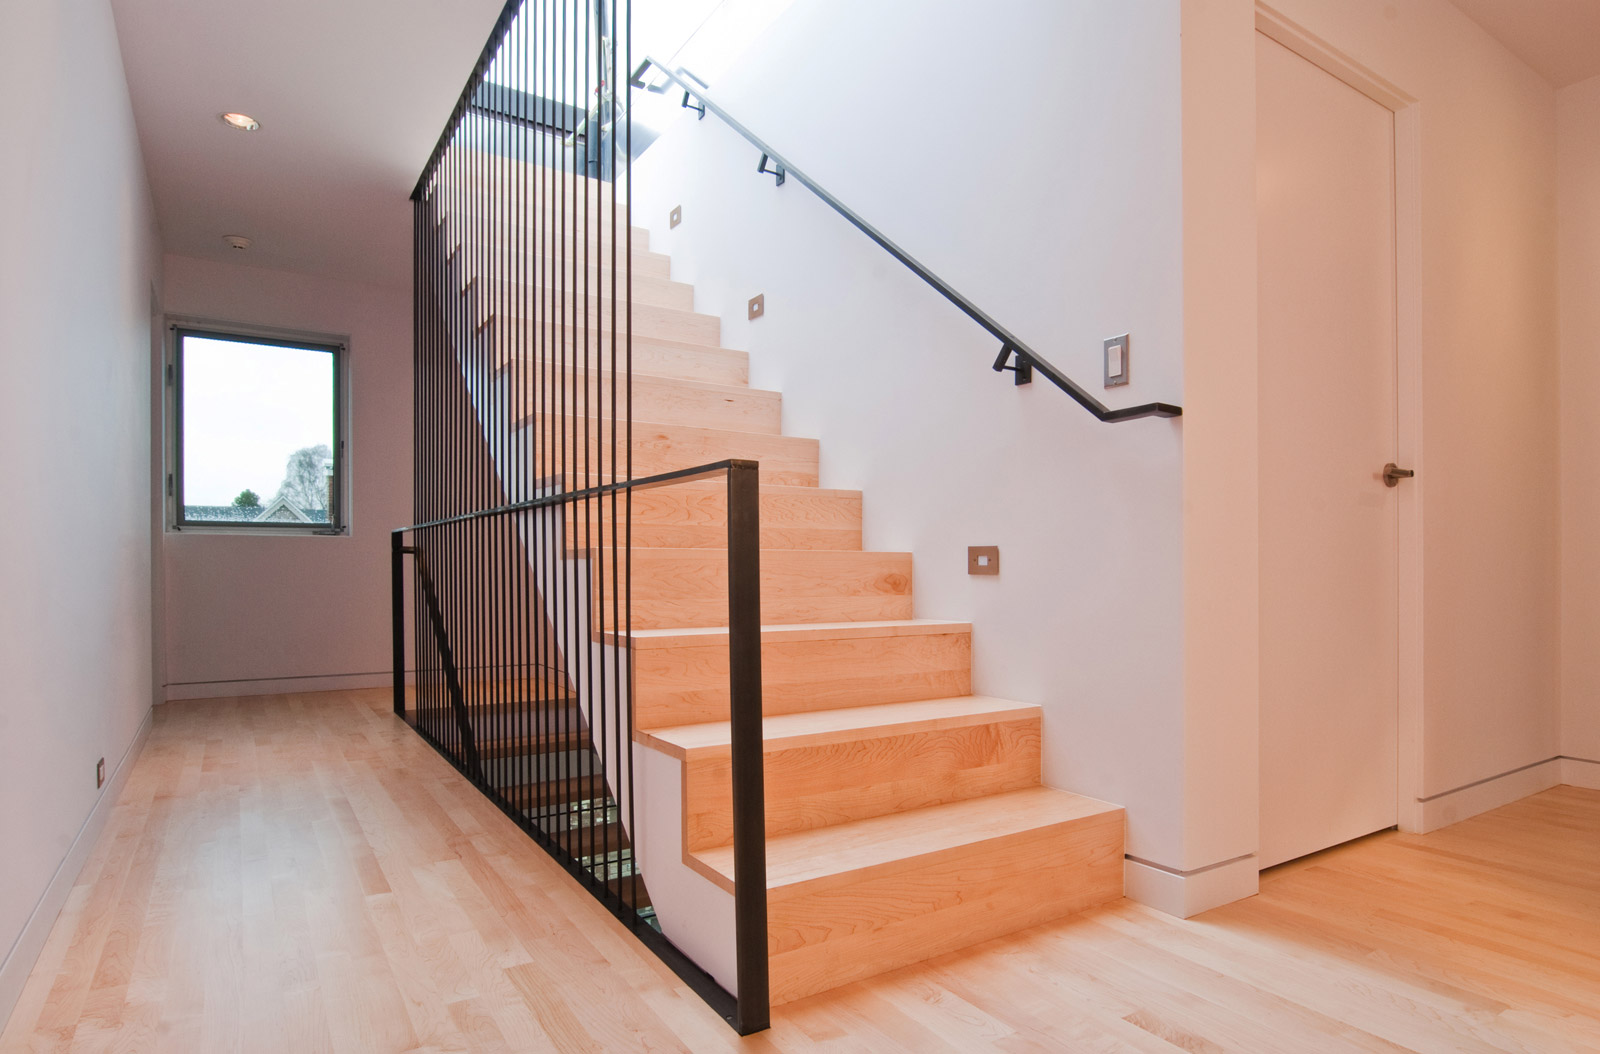 2_BUILD-LLC-Kirsch-Stair-16